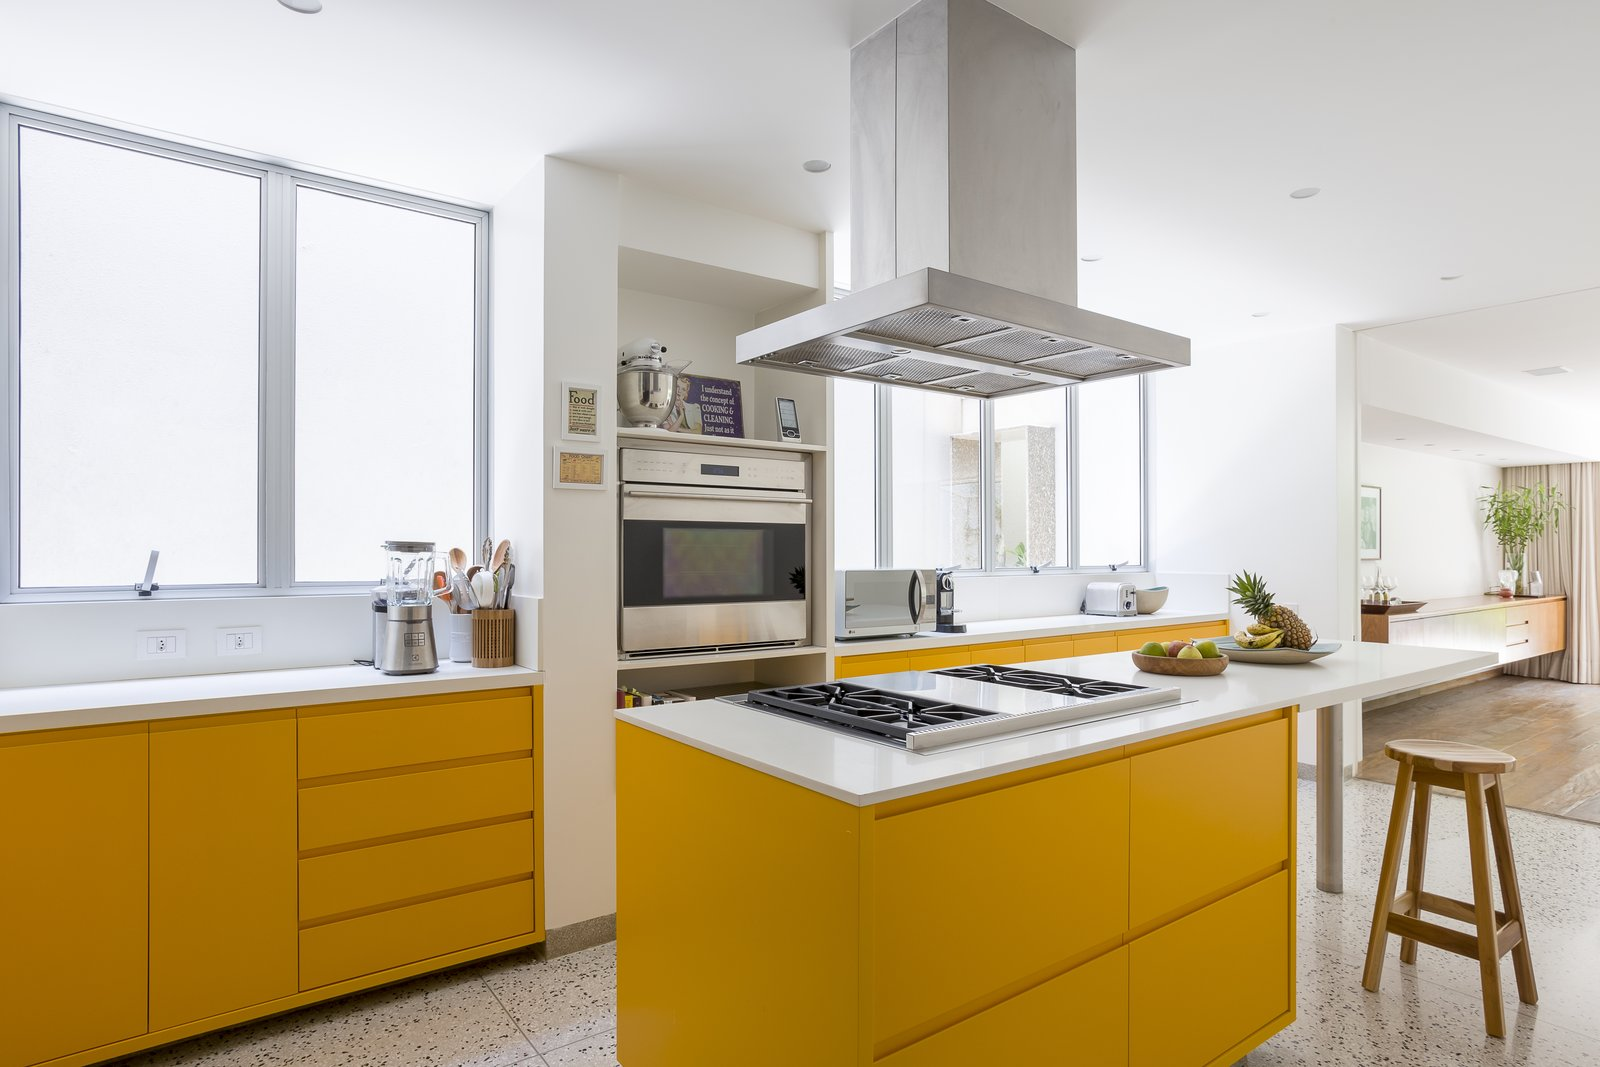 Kitchen, Recessed Lighting, Terrazzo Floor, Range Hood, Range, Colorful Cabinet, and Wall Oven Bright yellow cabinets in the kitchen add a playful, fun touch, while also maintaining to same sleek, contemporary look.     Photo 9 of 13 in Lush Gardens Infuse Tropical Vibes in This Chic Brazilian Home